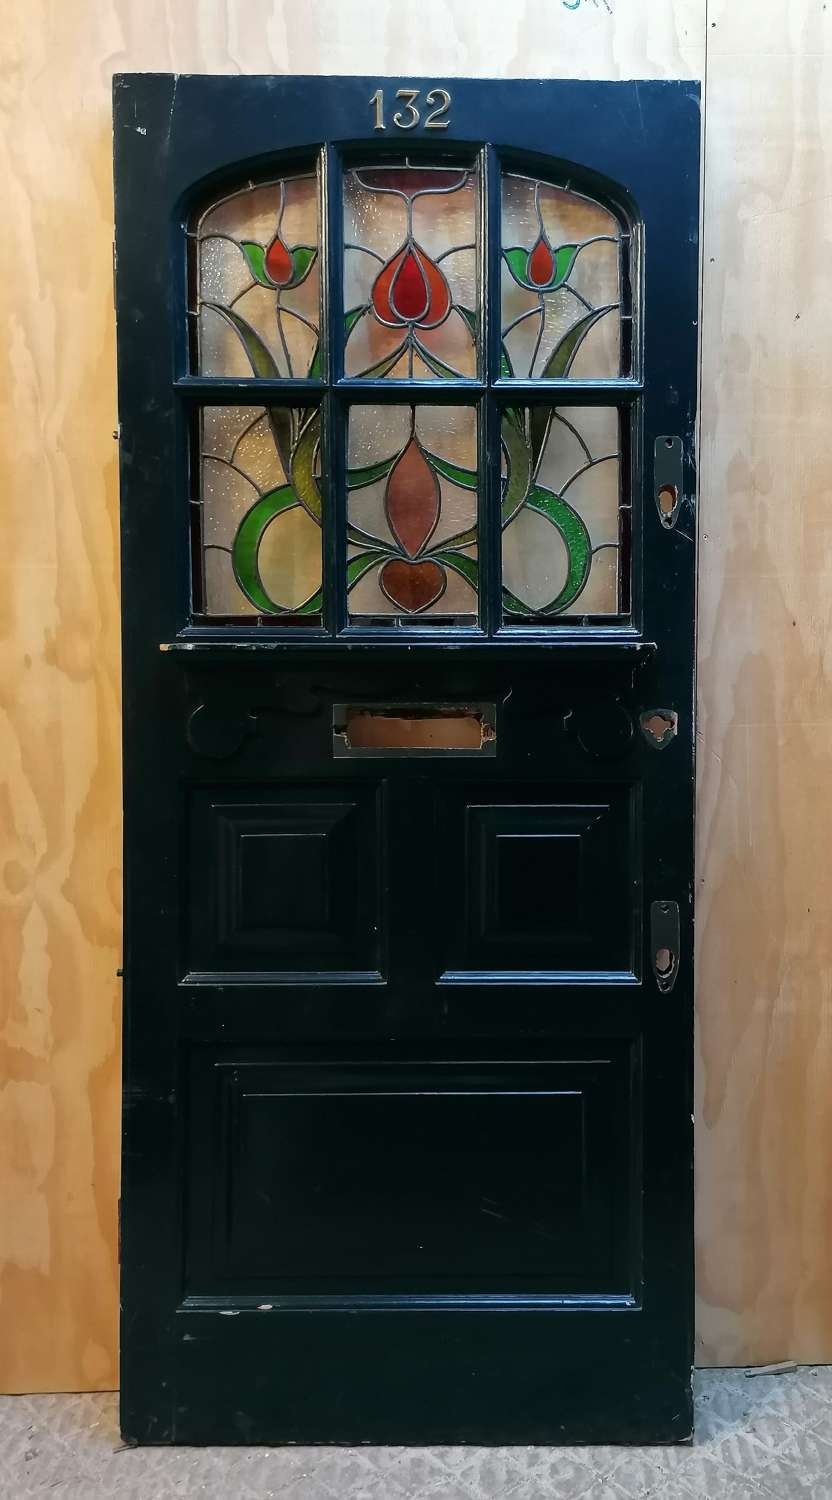 DE0884 LARGE EDWARDIAN PAINTED PINE STAINED GLASS FRONT DOOR